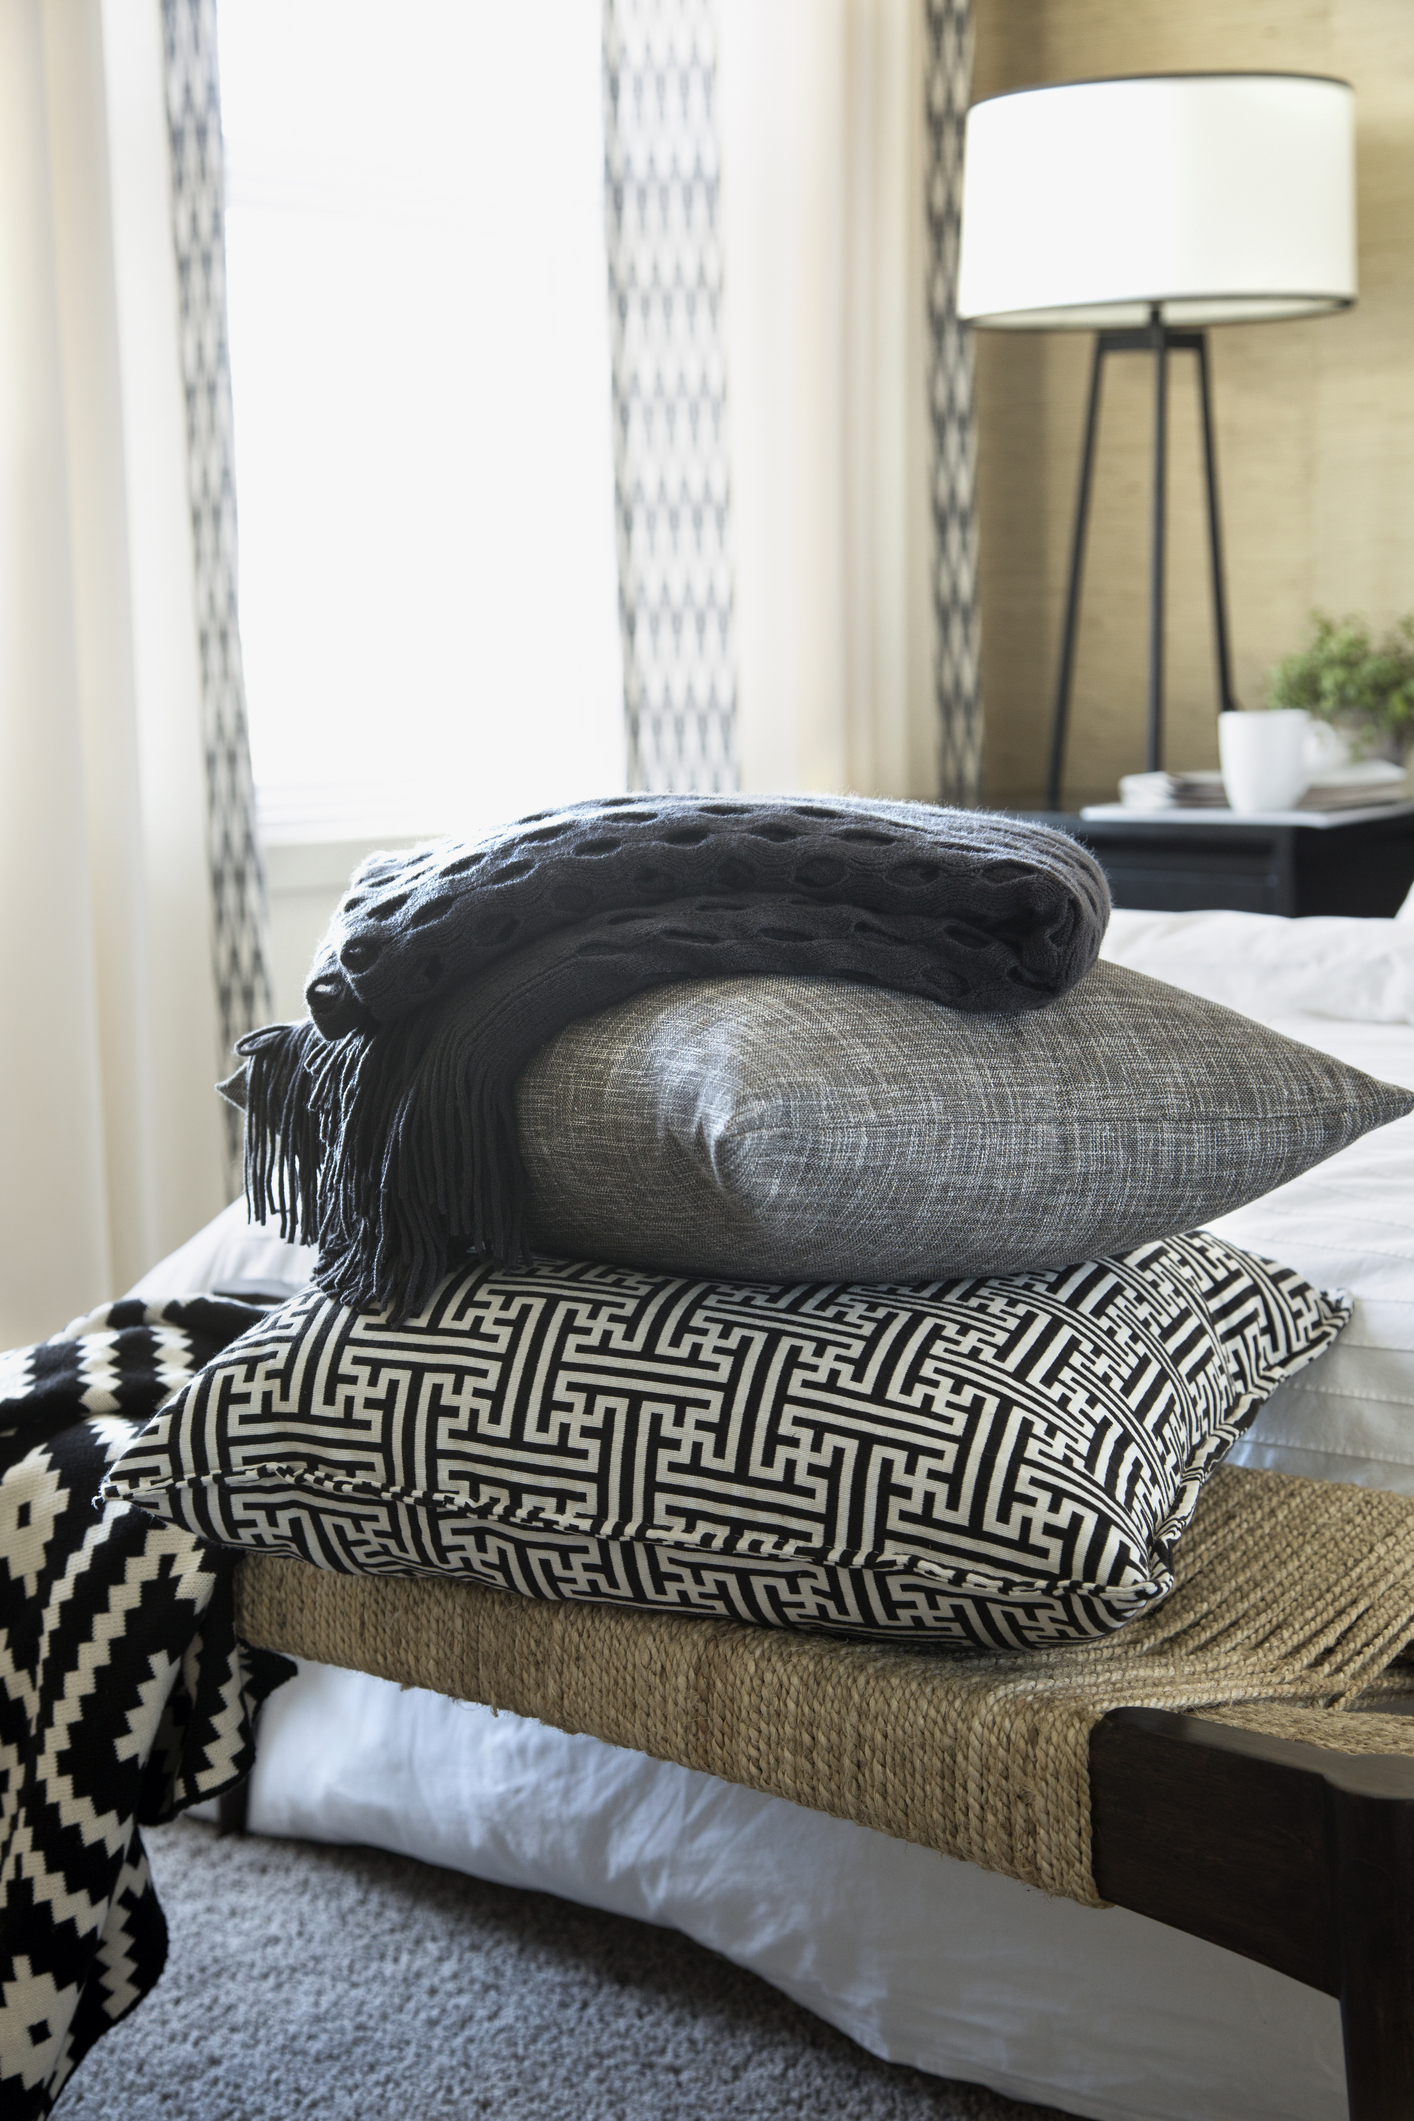 Pillows and blanket stacked on bench in bedroom